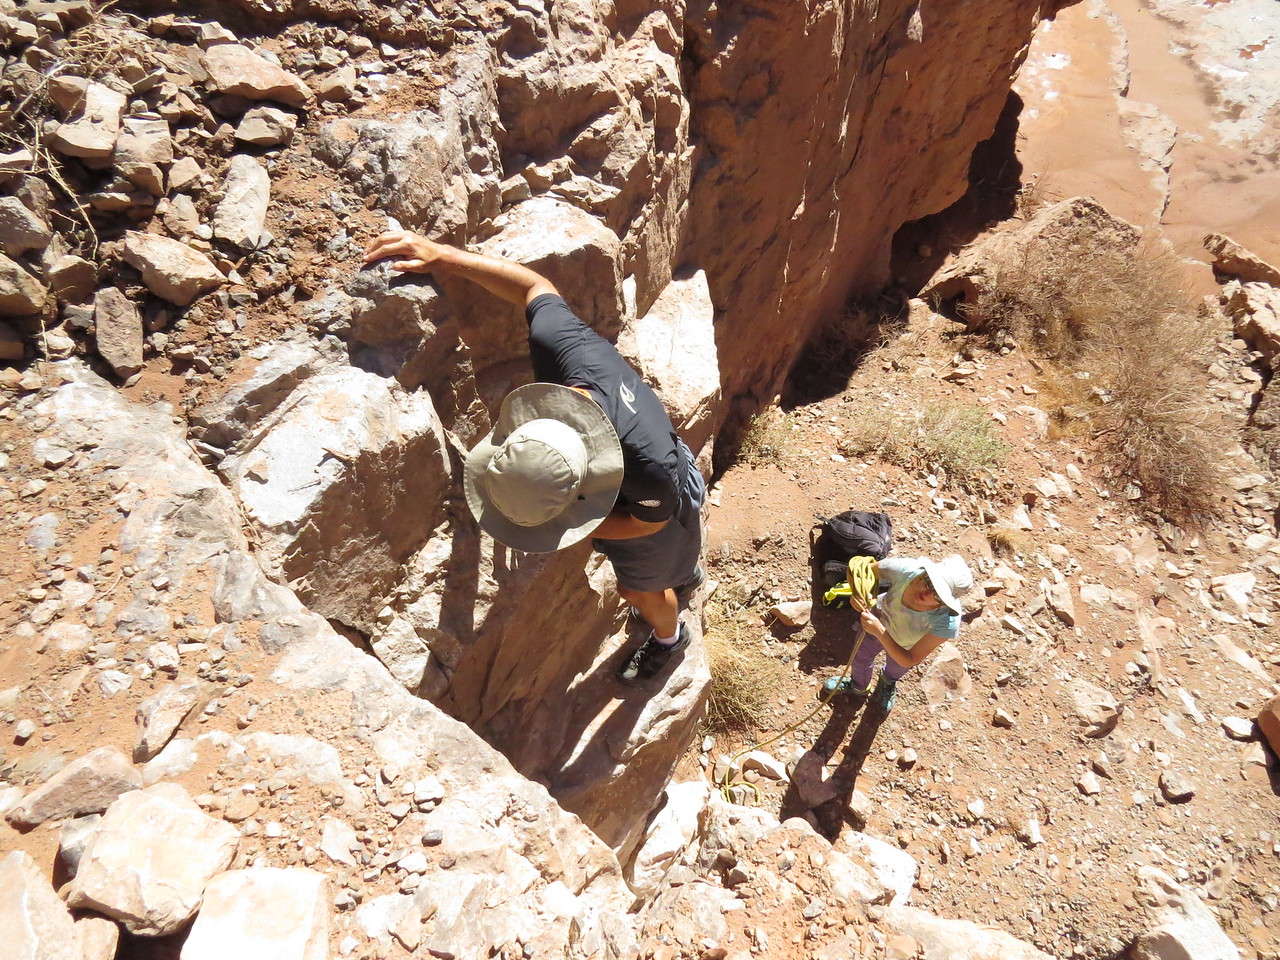 Then another 12-foot Class 3 descent similar to the up climb.